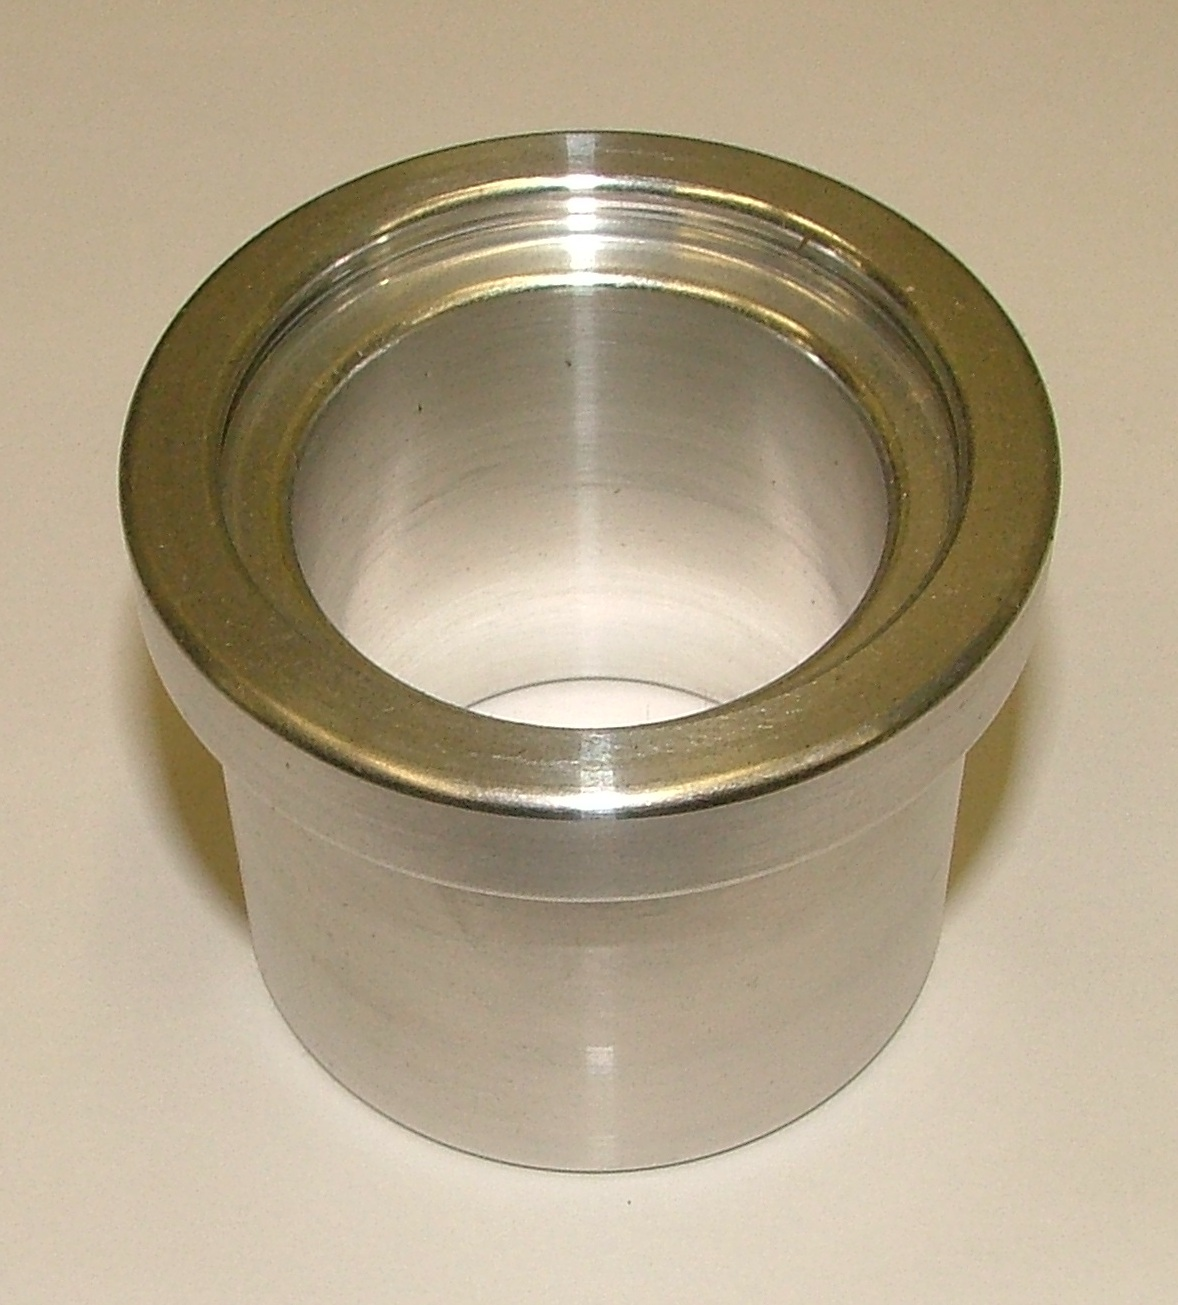 Small Truck Arm Bushing Insert